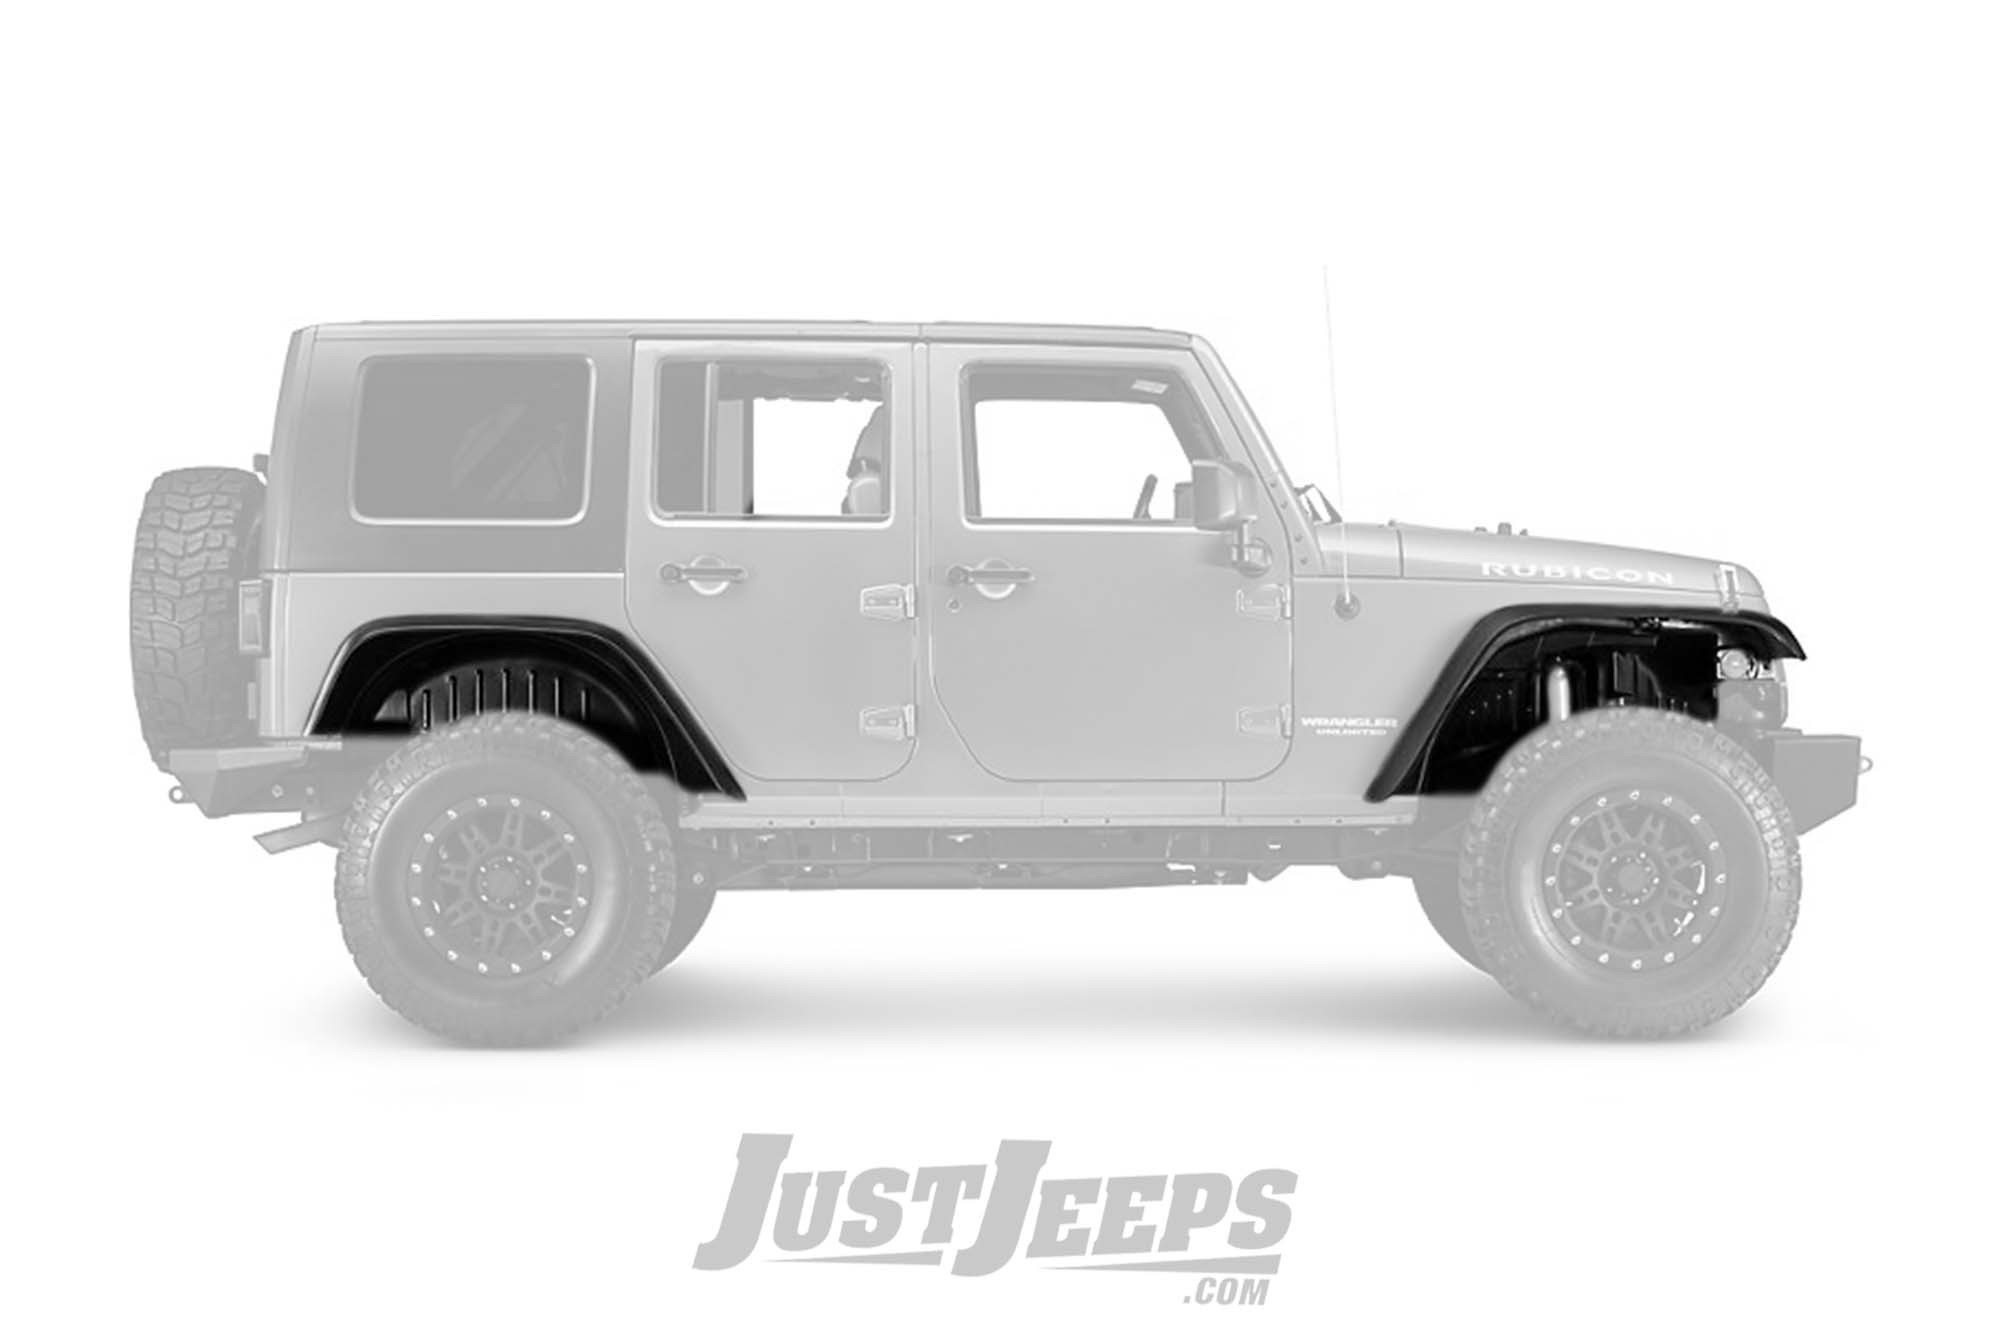 Just Jeeps Rugged Ridge Flat Fender Flare Amp Liners Kit For